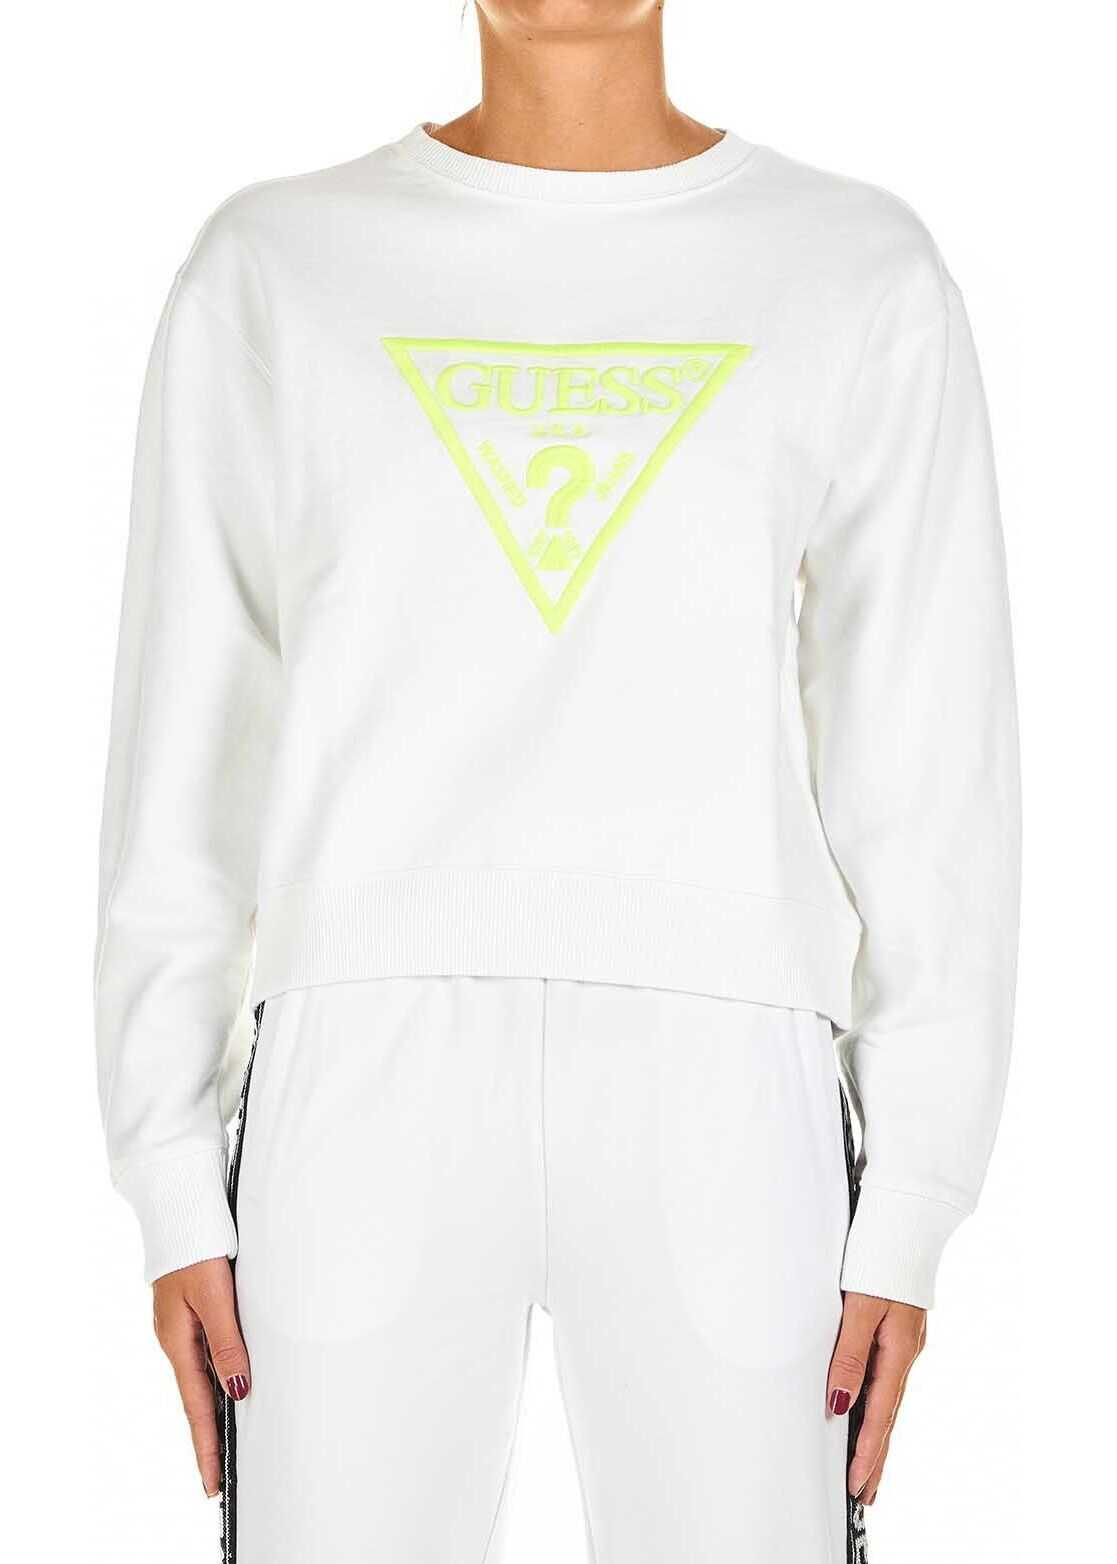 GUESS Sweatshirt with logo embroidery White